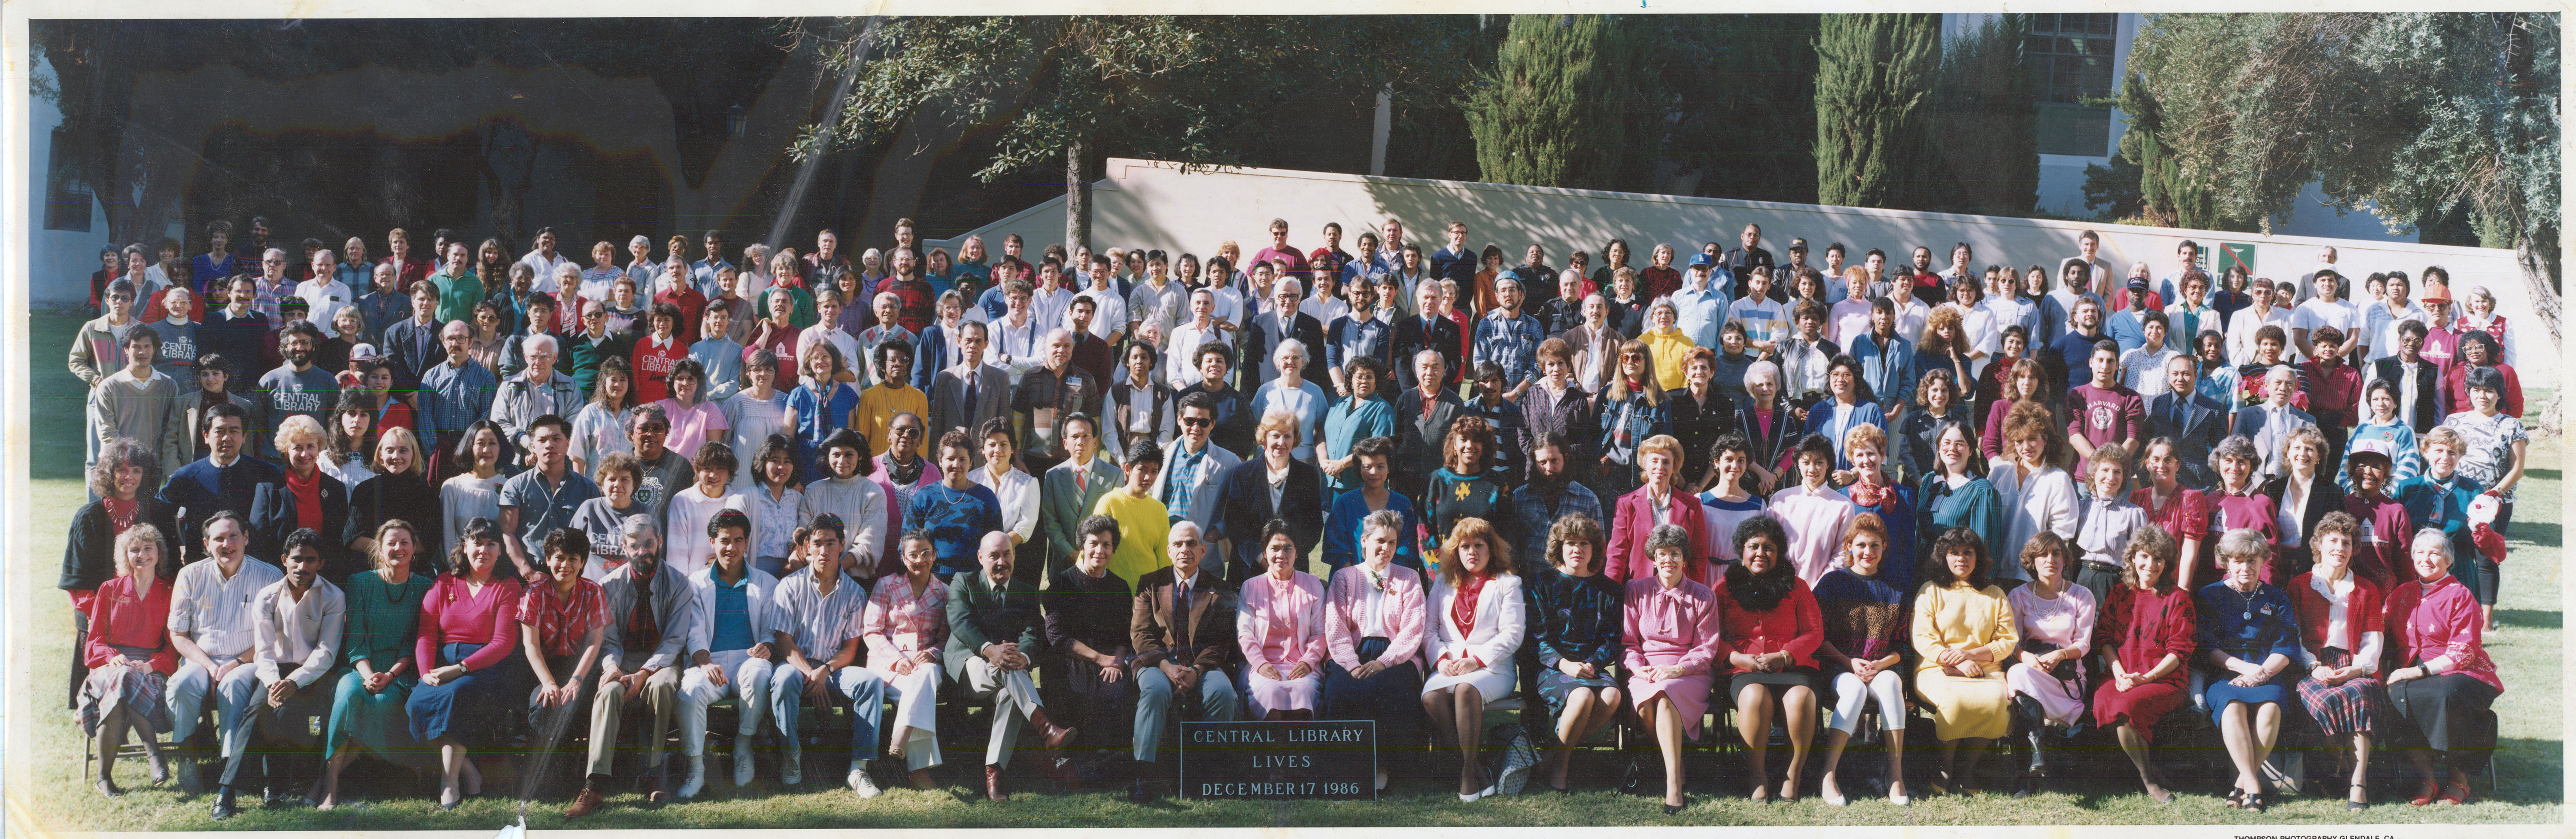 Image Central Library Class Photo